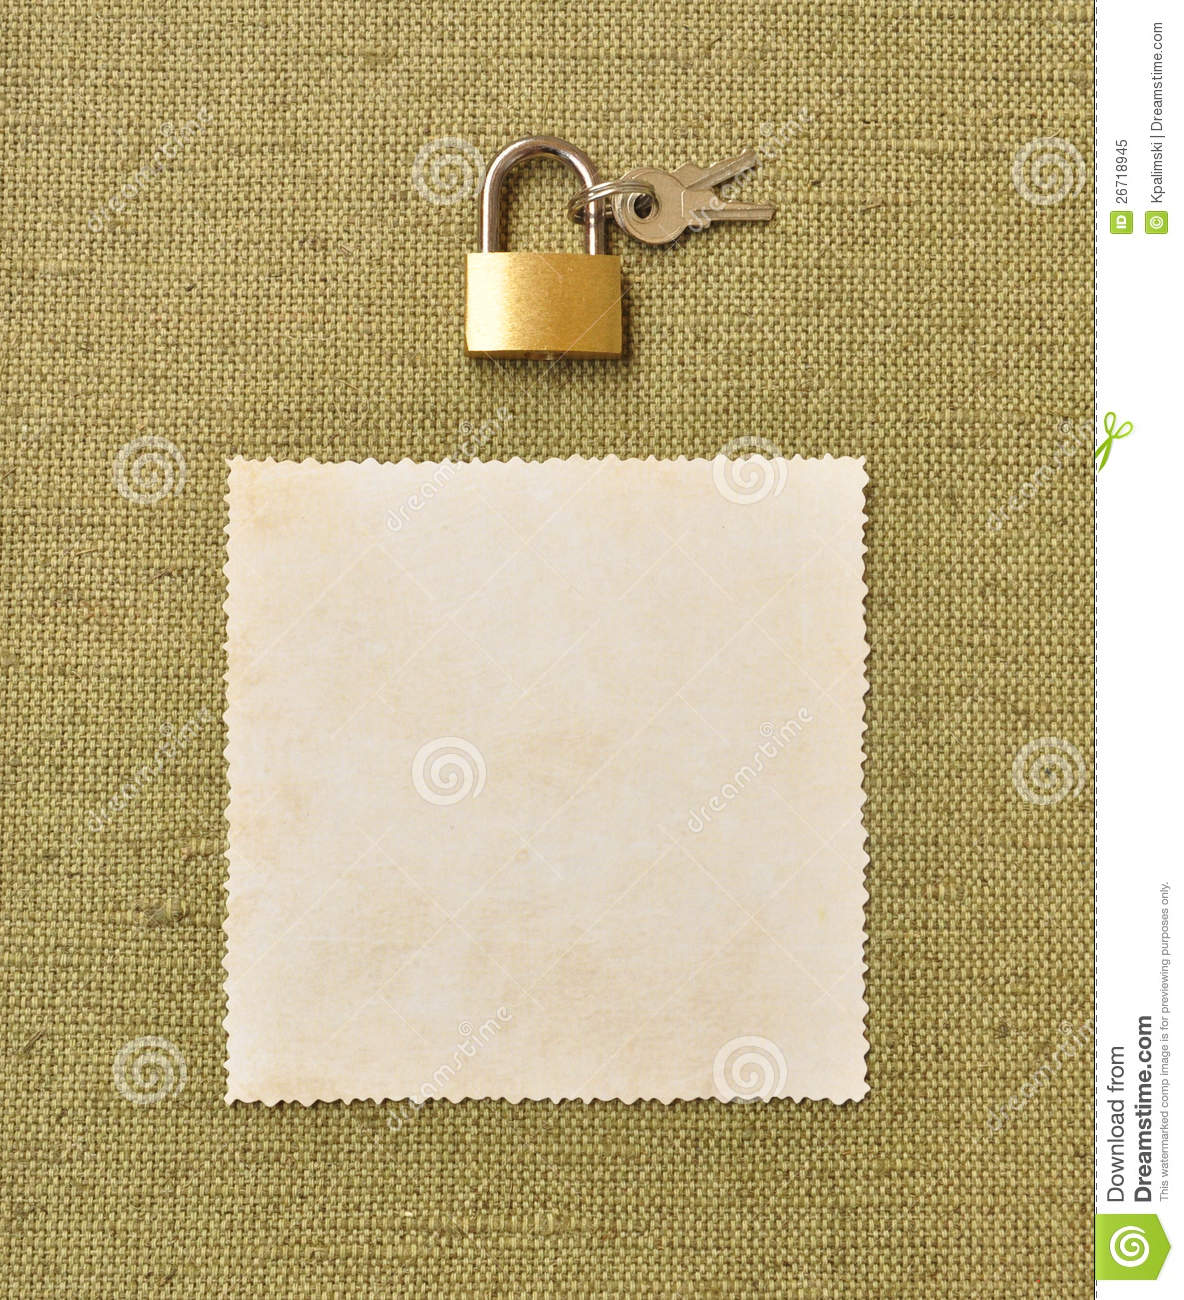 Photo Page: Login And Password Page Abstract Background Stock Image